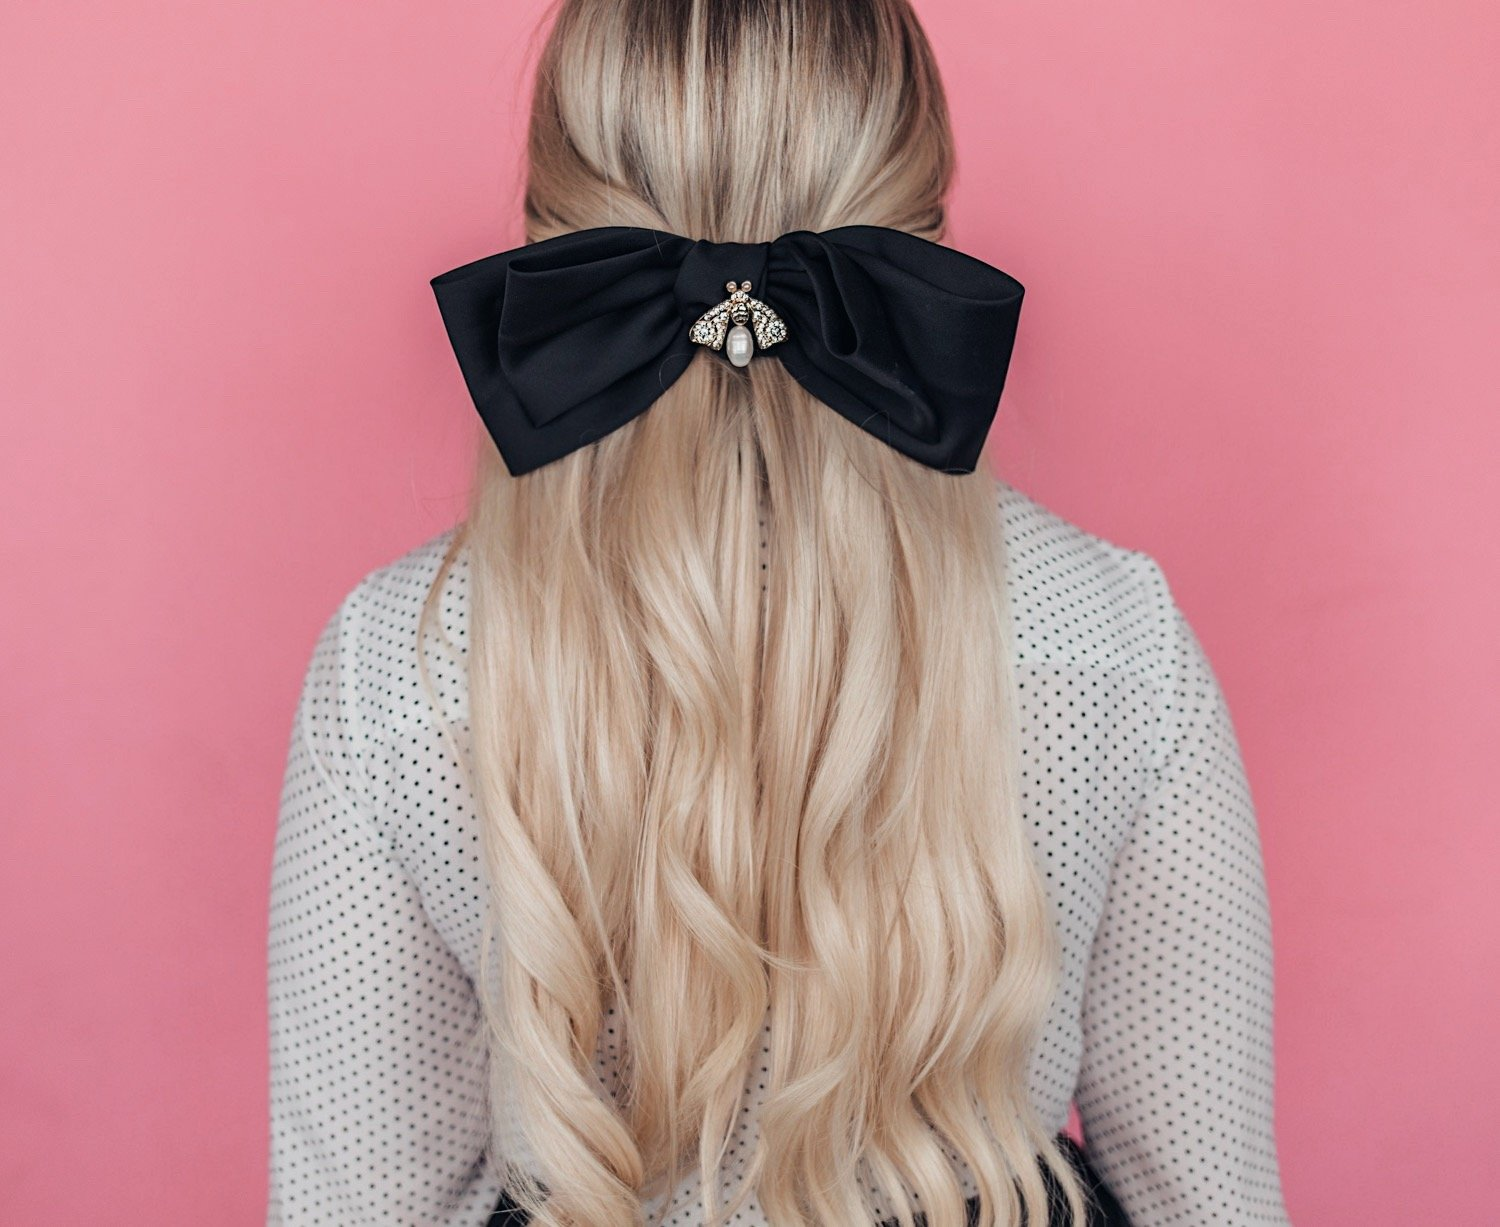 Fashion blogger Elizabeth Hugen of Lizzie in Lace shares creative ways to wear earrings without pierced ears including a feminine bow hairstyle